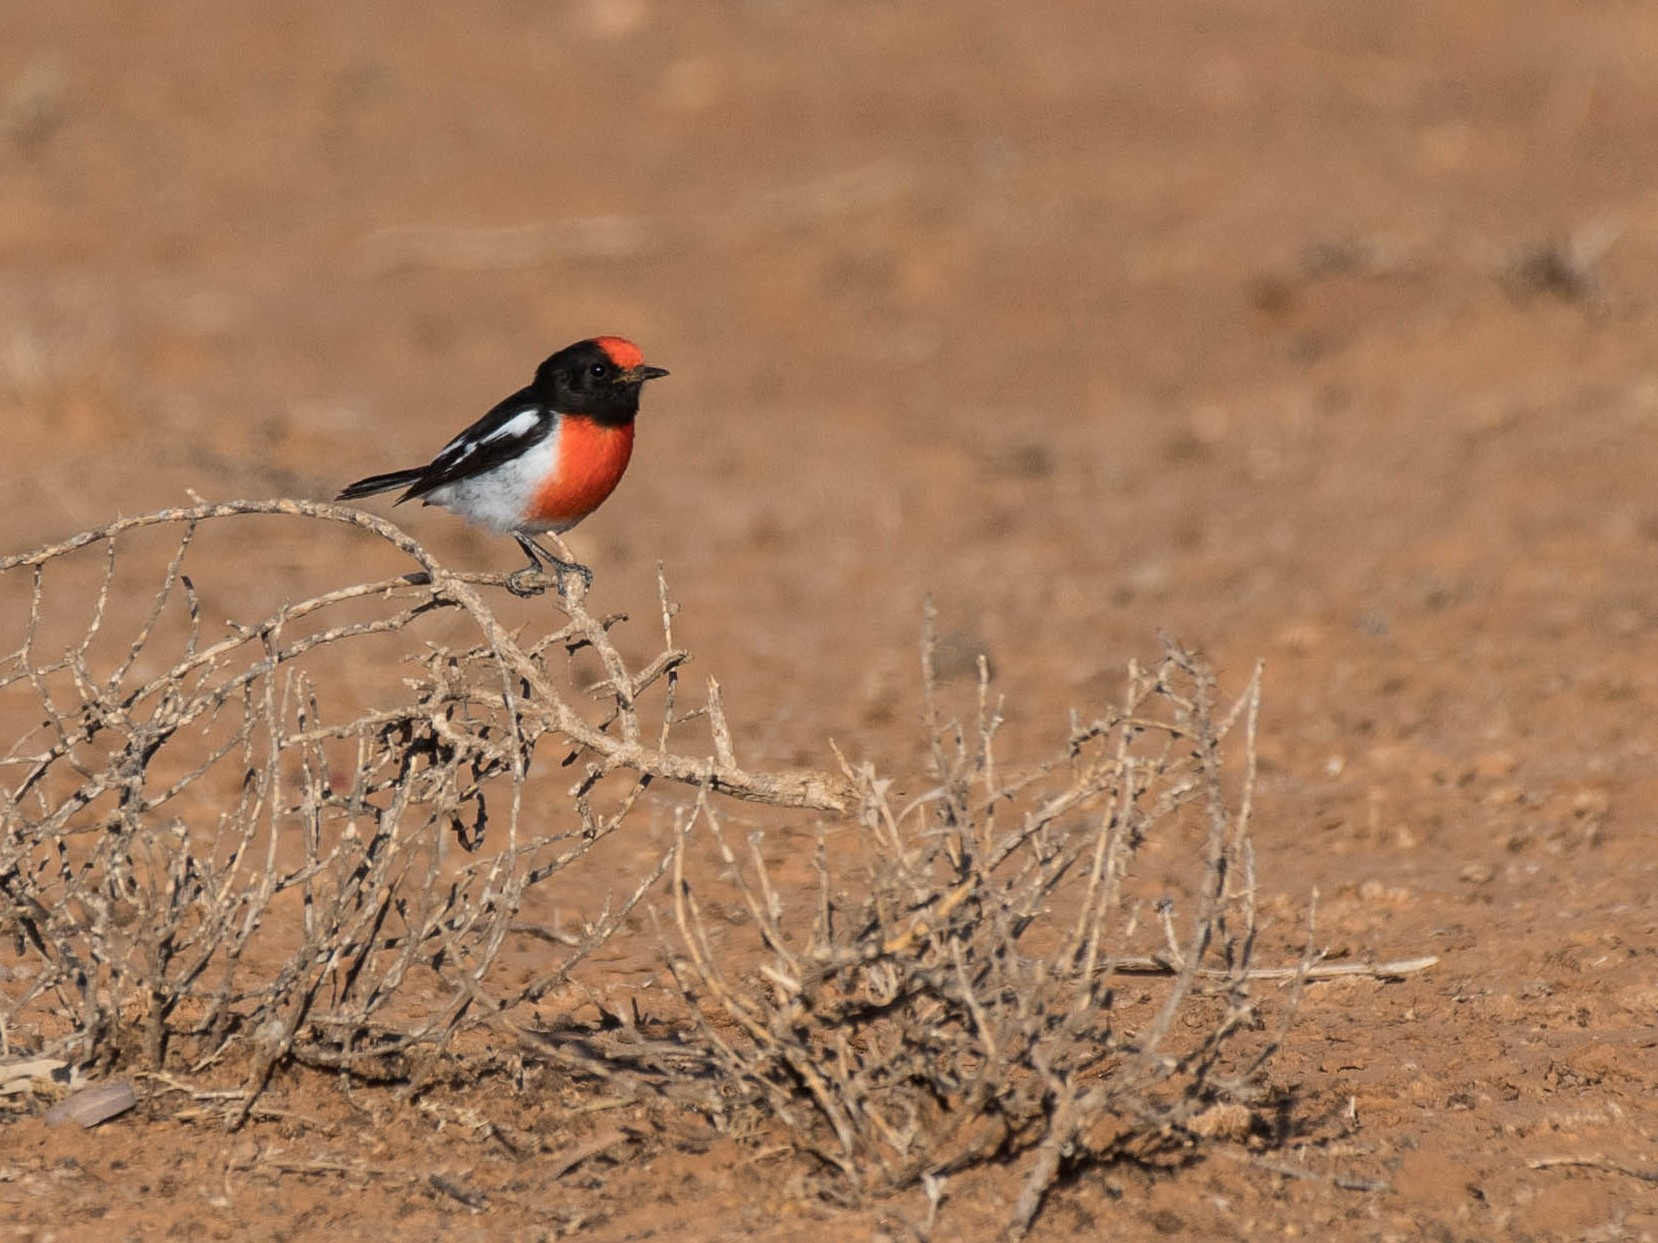 Red-capped Robin - Terence Alexander